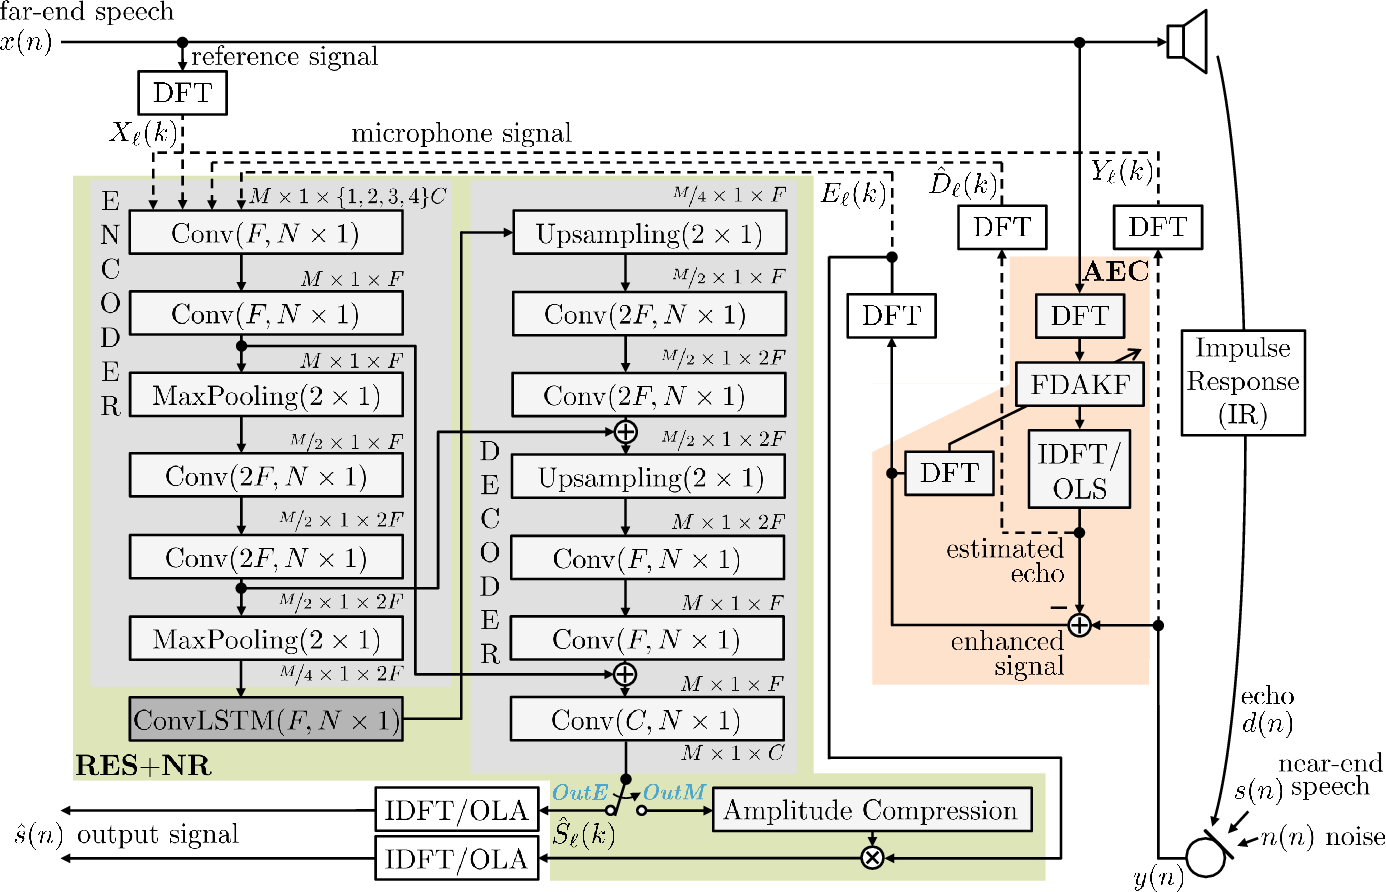 Figure 1 for Deep Residual Echo Suppression and Noise Reduction: A Multi-Input FCRN Approach in a Hybrid Speech Enhancement System